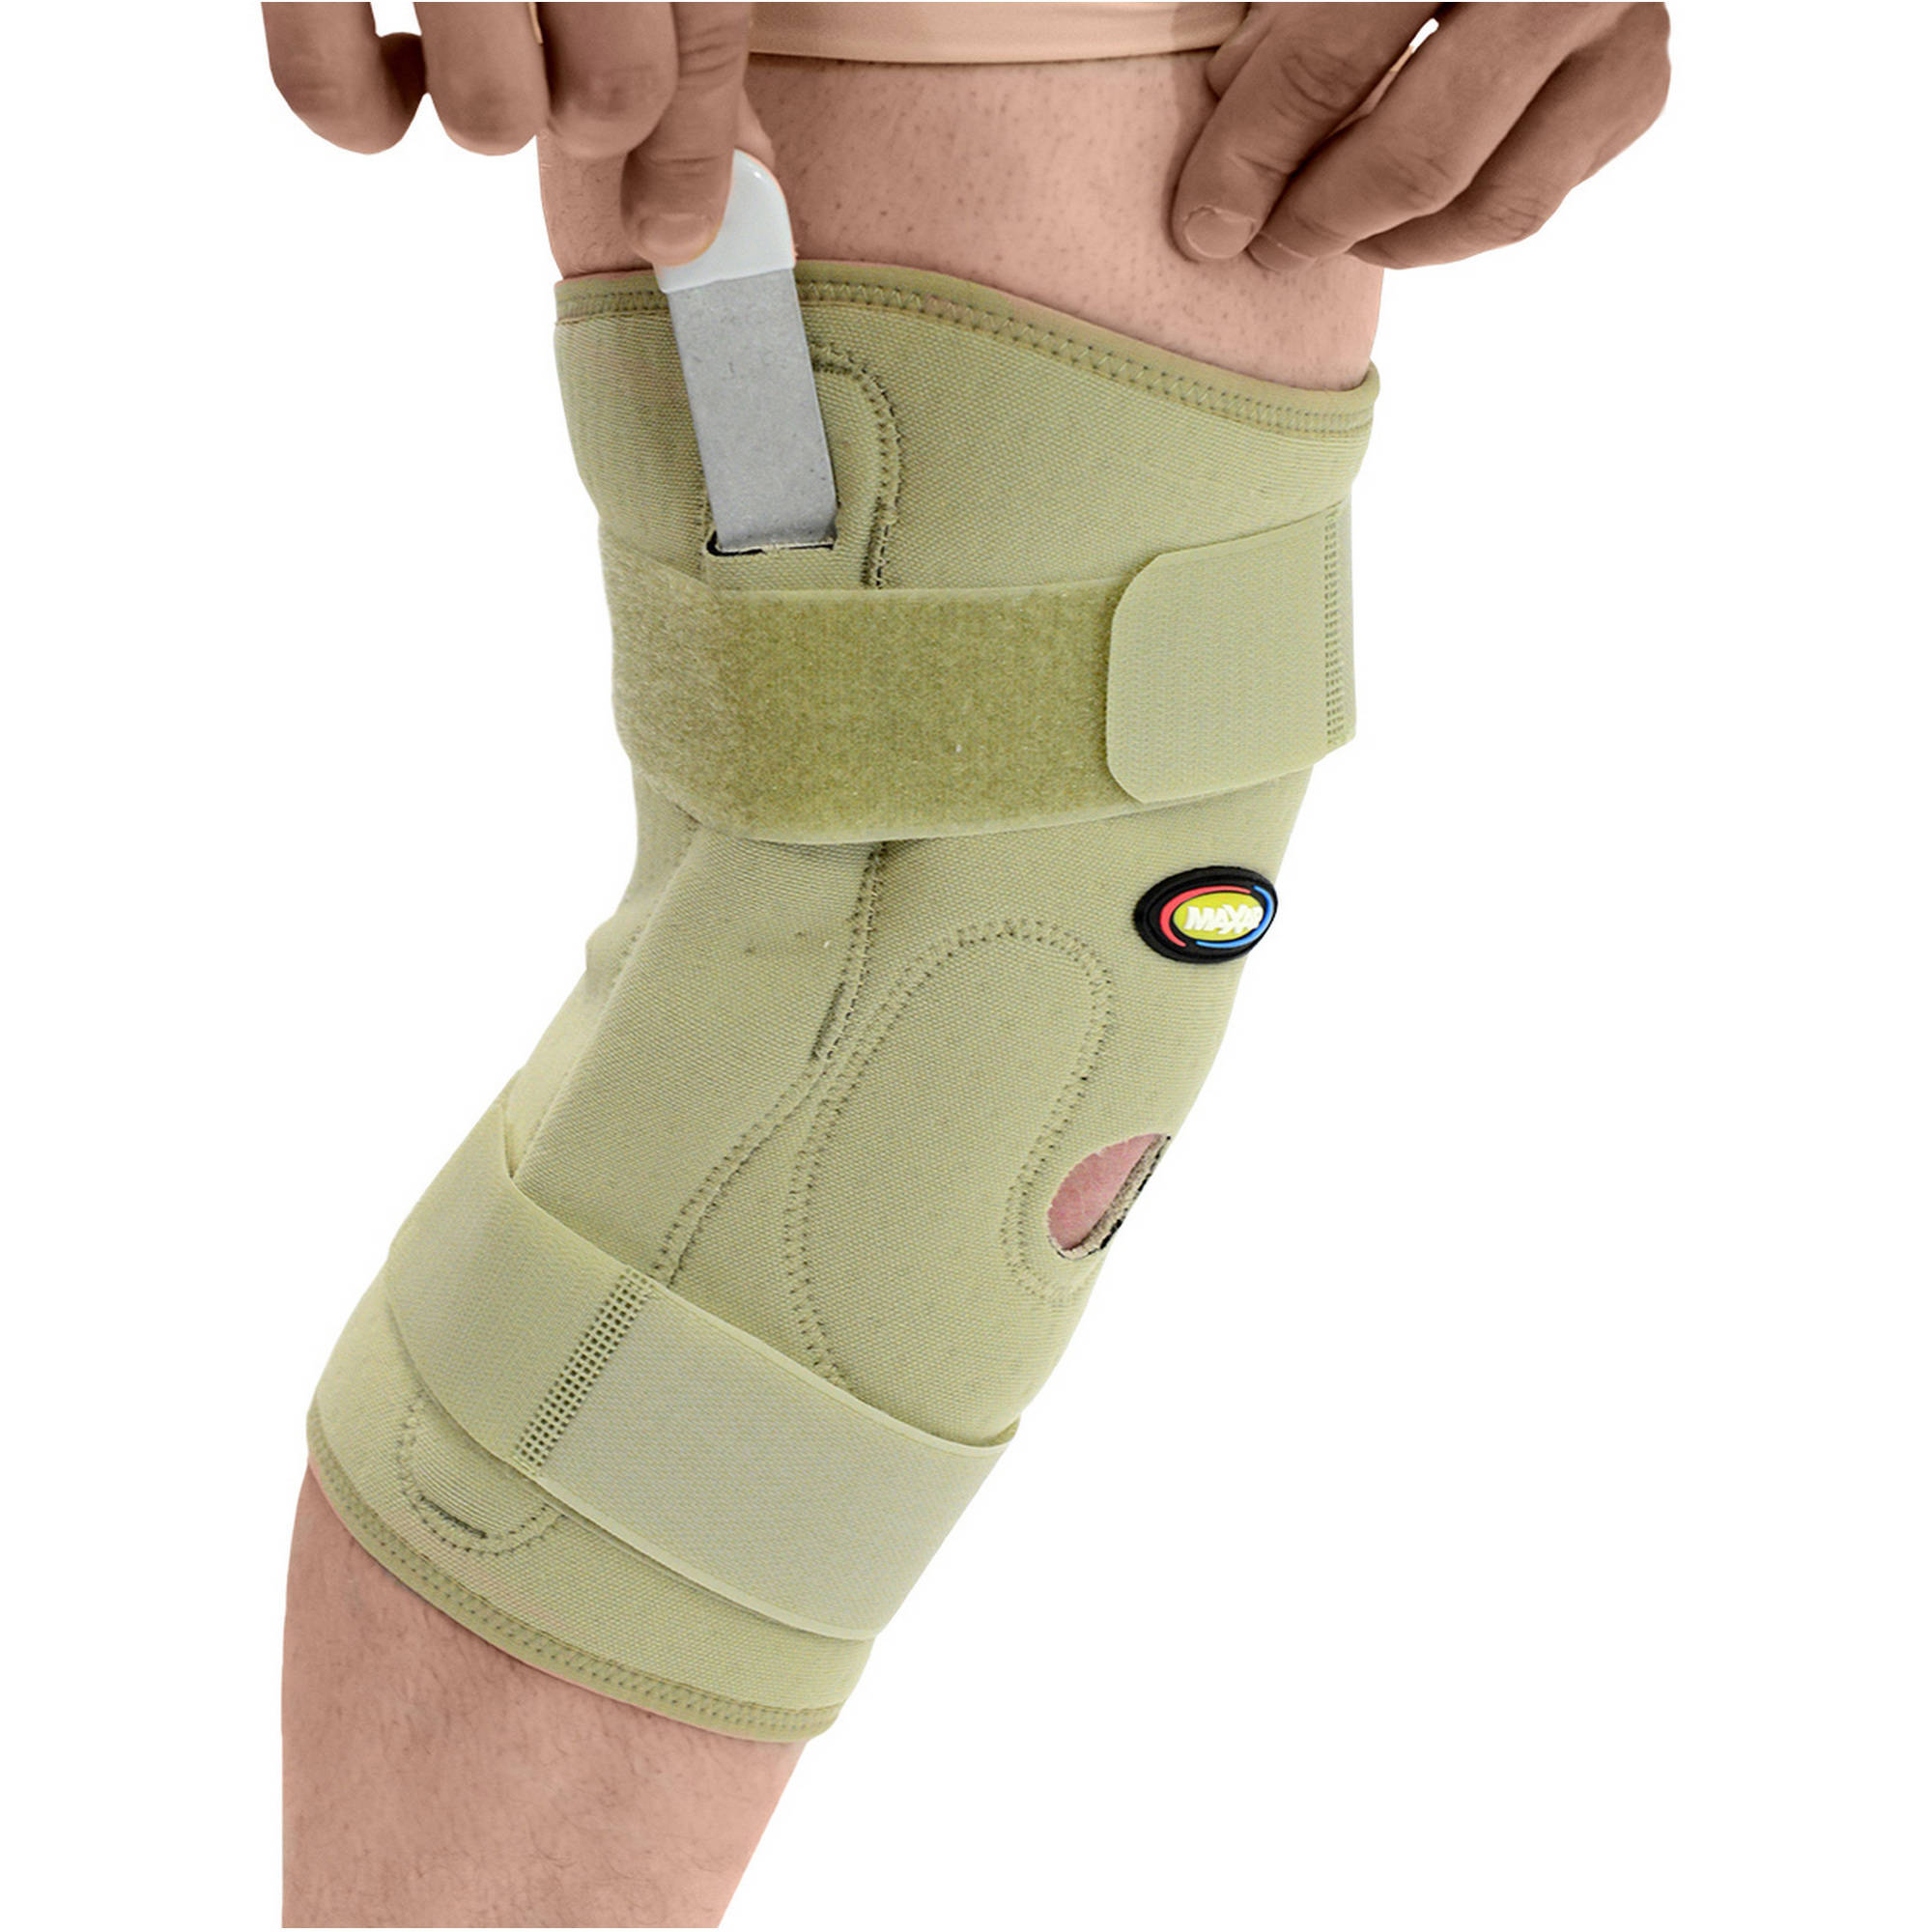 MAXAR Airprene Breathable Neoprene Pull-On Knee Brace with Double-Pivot Hinge